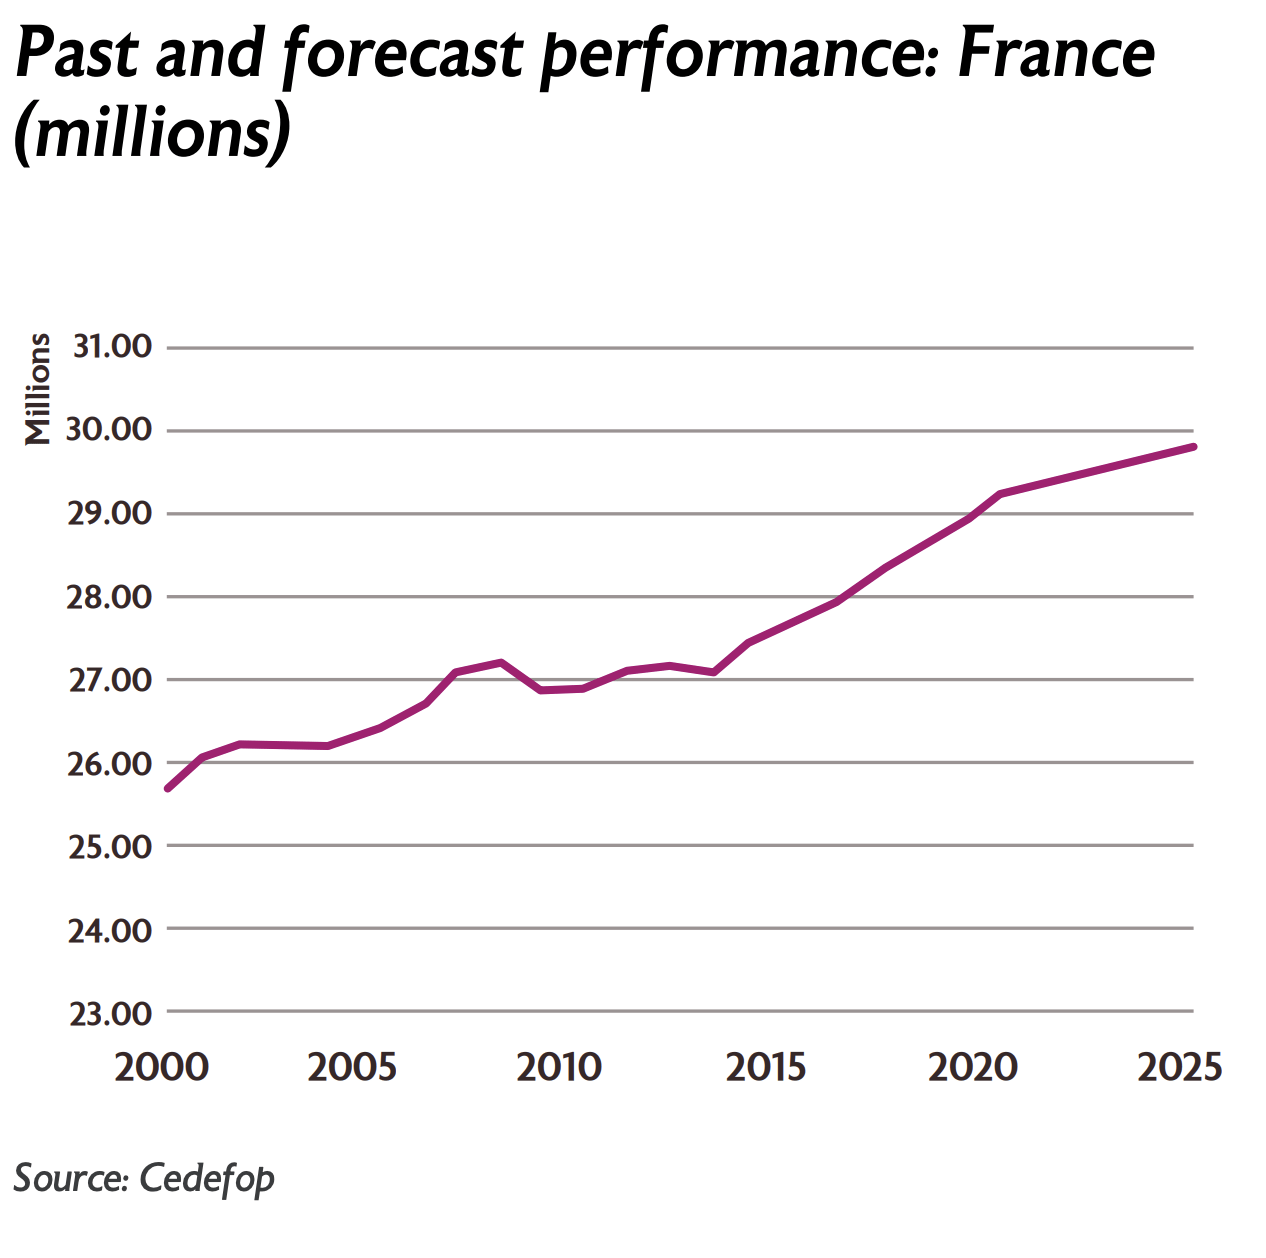 Past and forecast performance: France (millions)